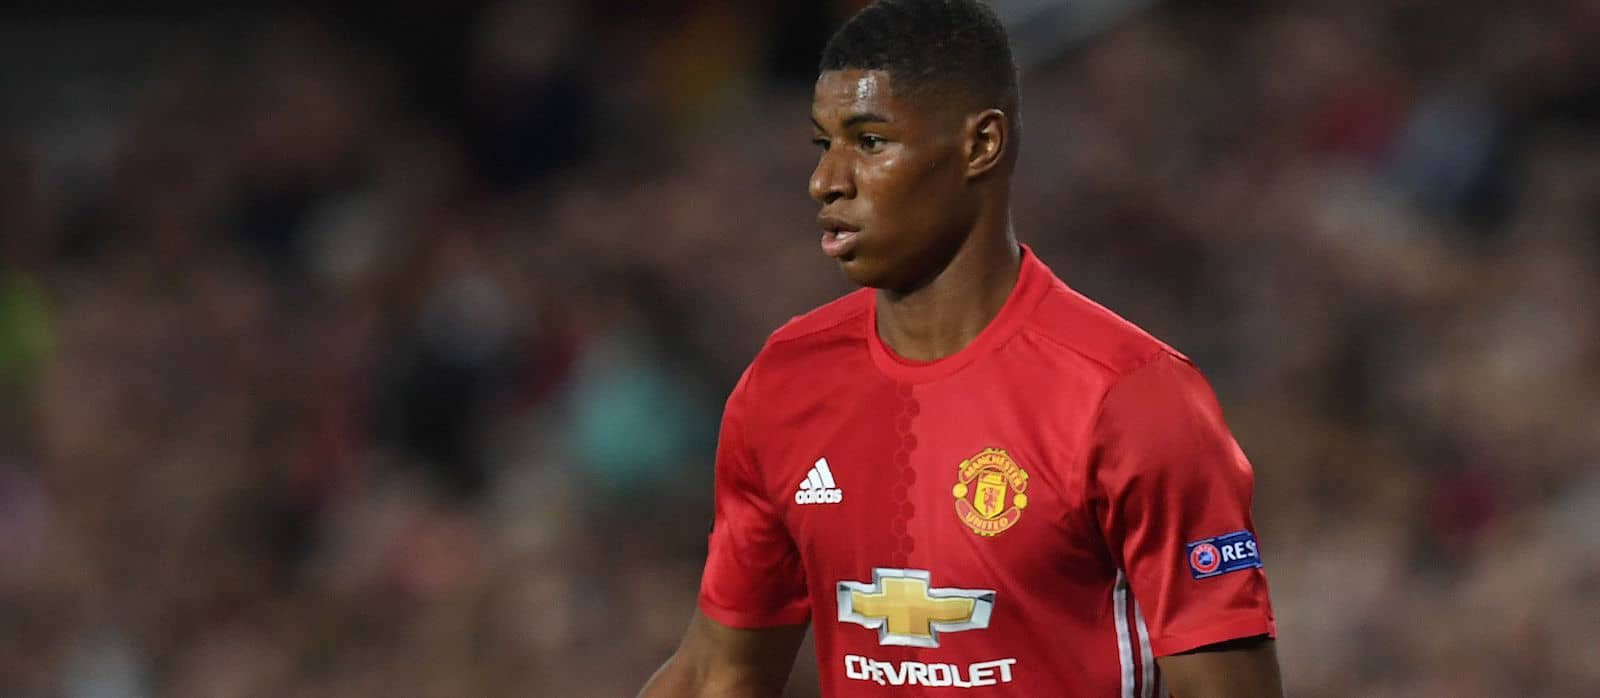 Marcus Rashford reveals his childhood idols at Manchester United